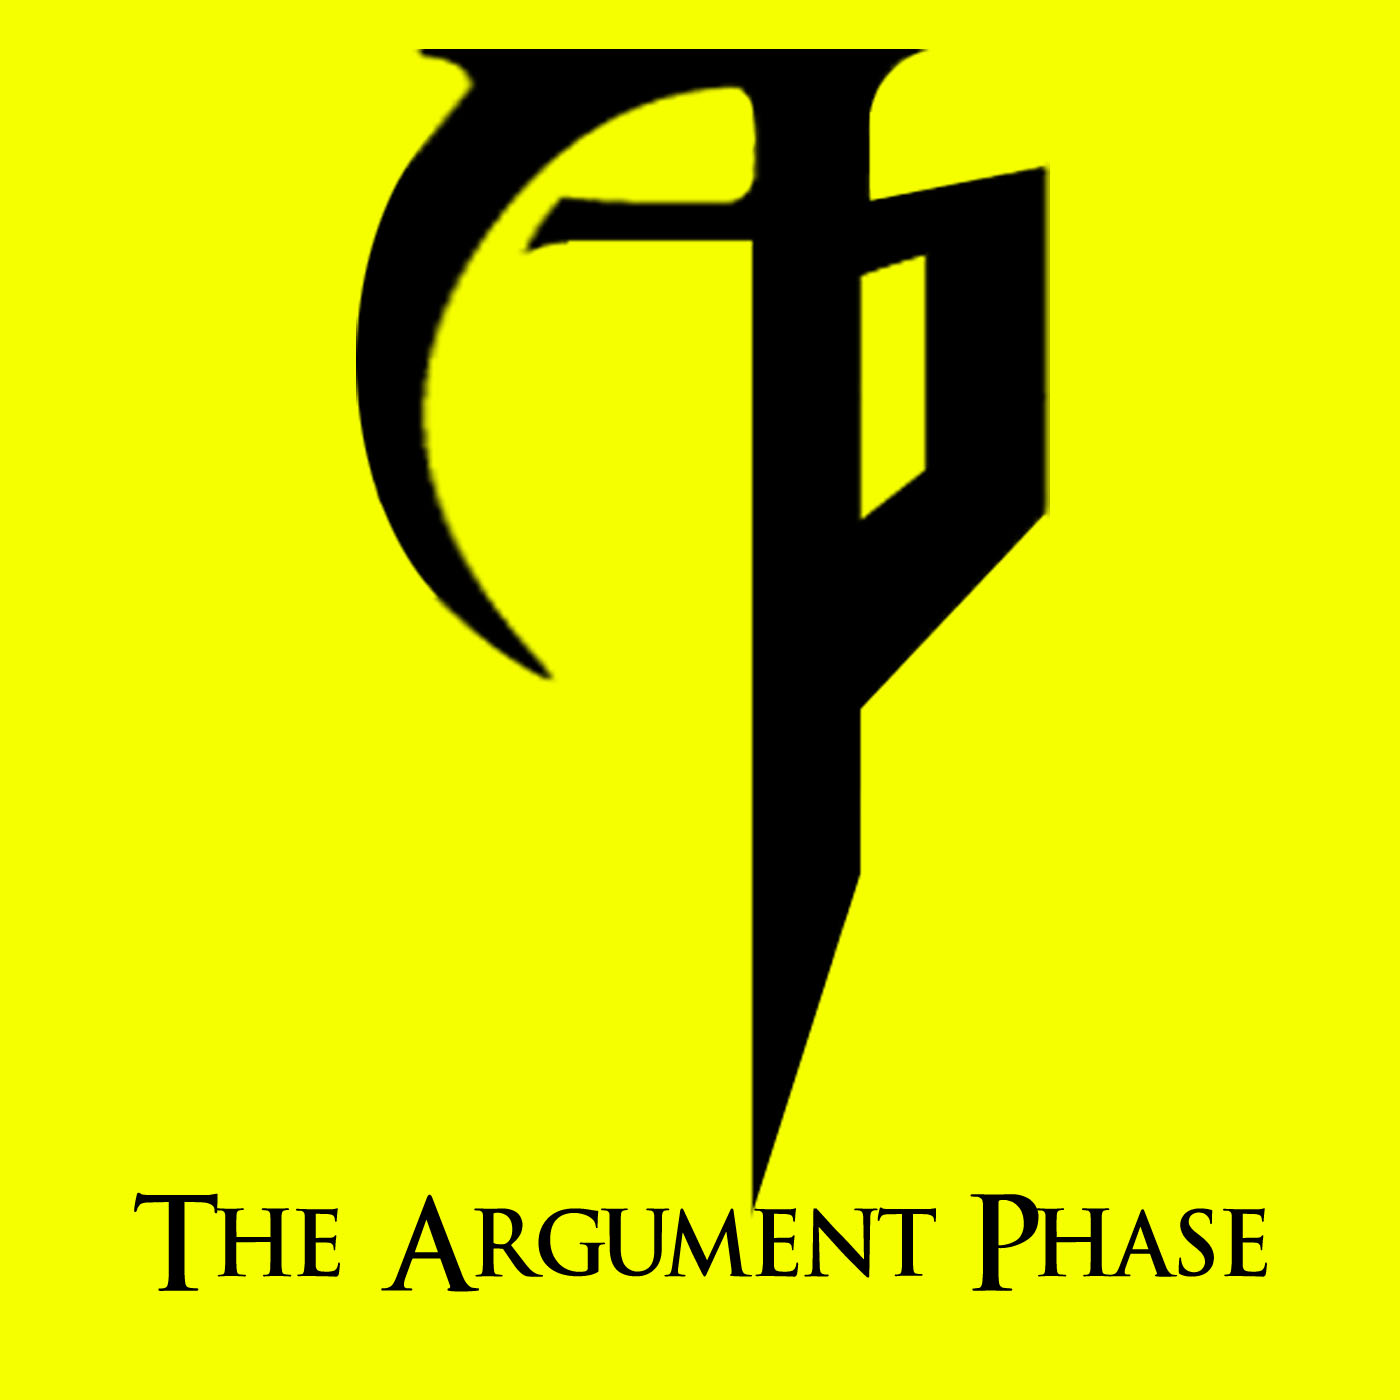 The argument phase logo